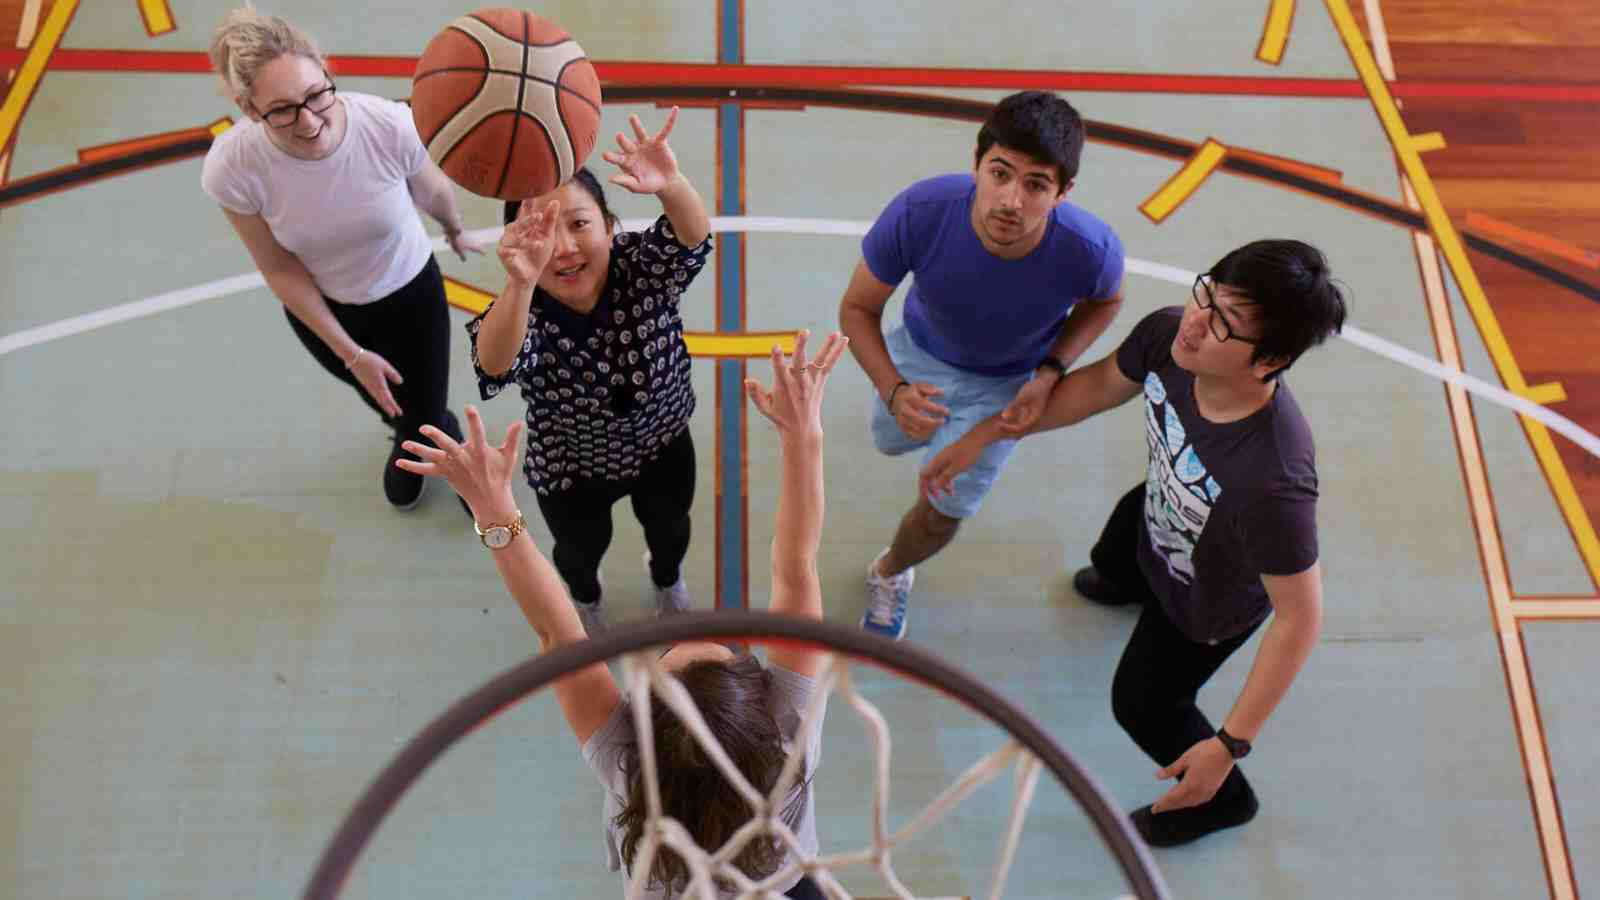 Students playing basketball at Victoria's Kelburn Recreation Centre